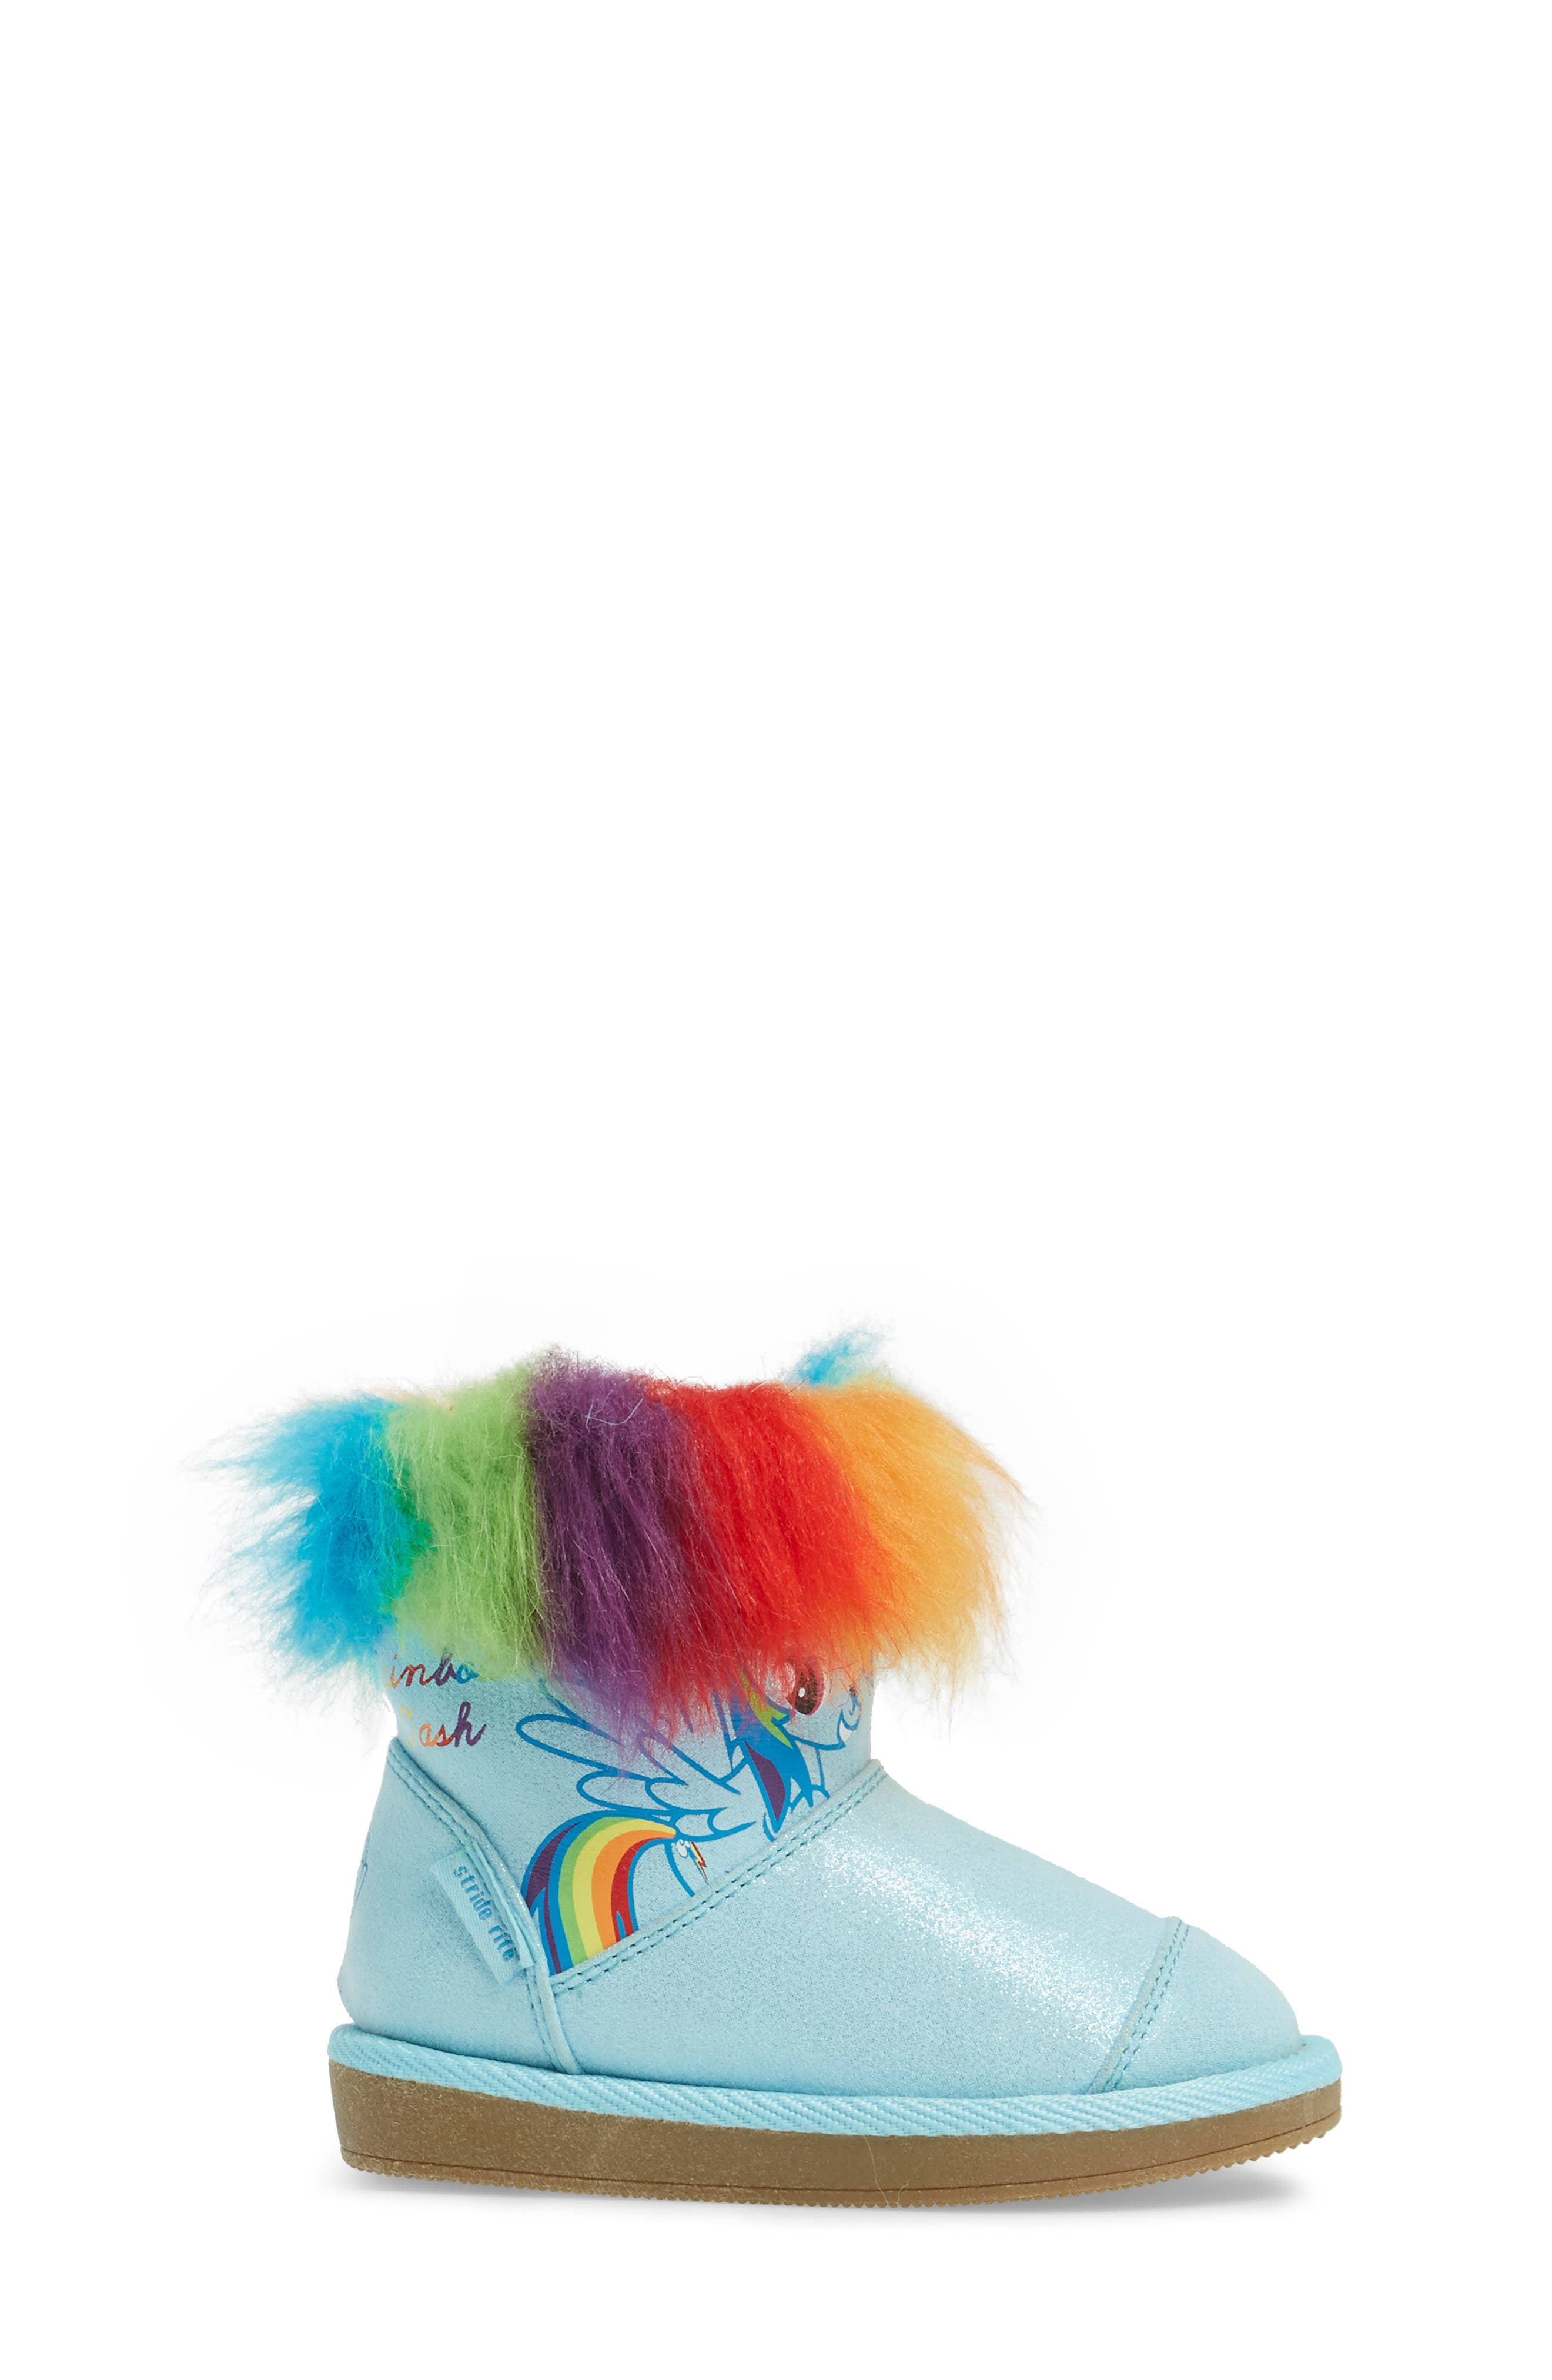 My Little Pony<sup>®</sup> Rainbow Dash Boot,                             Alternate thumbnail 3, color,                             400